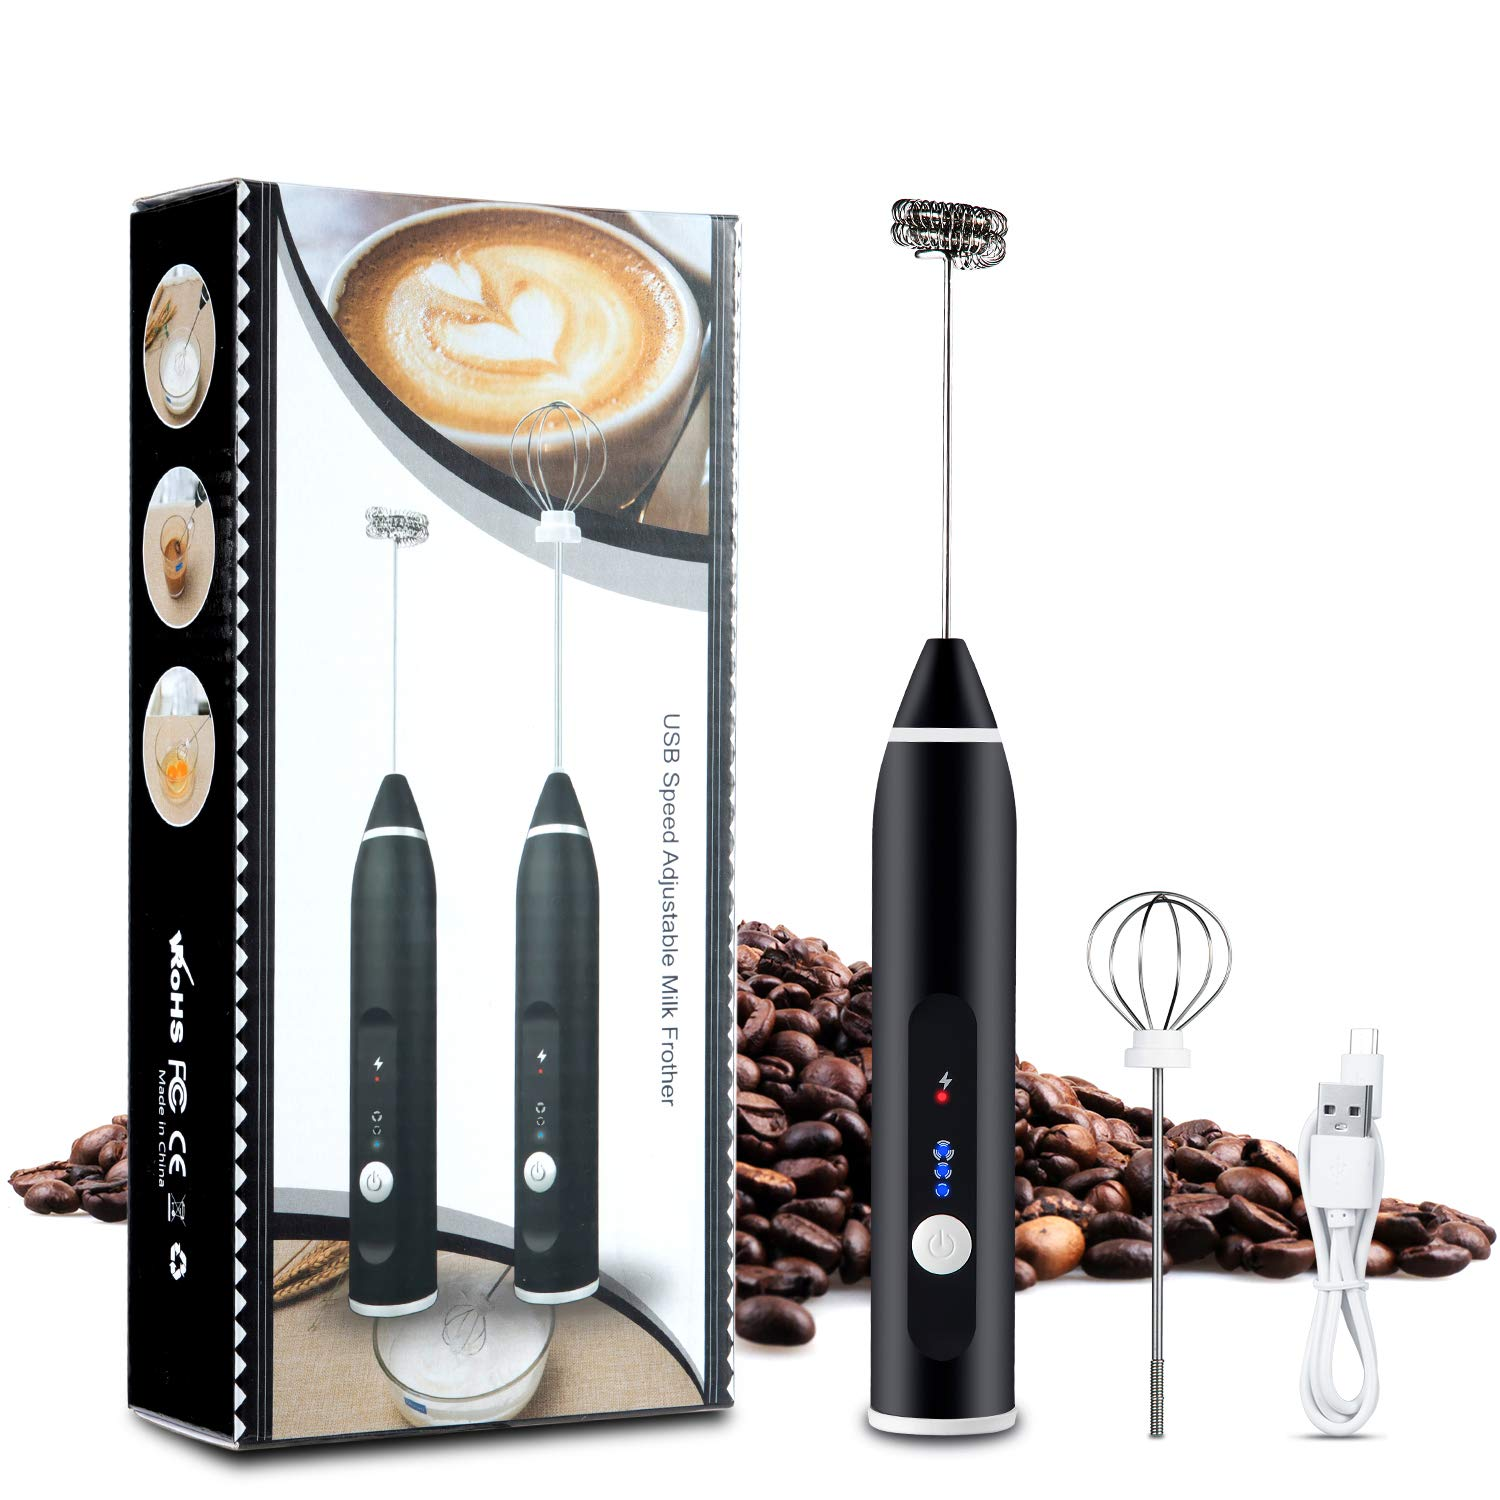 Kitdine USB Rechargeable Milk Frother Handheld Electric Foam Maker with 2 Stainless whisks, 3-Speed Adjustable Mini Blender Perfect for Egg Mix, Latte Coffee Cappuccino, Hot Chocolate Matcha